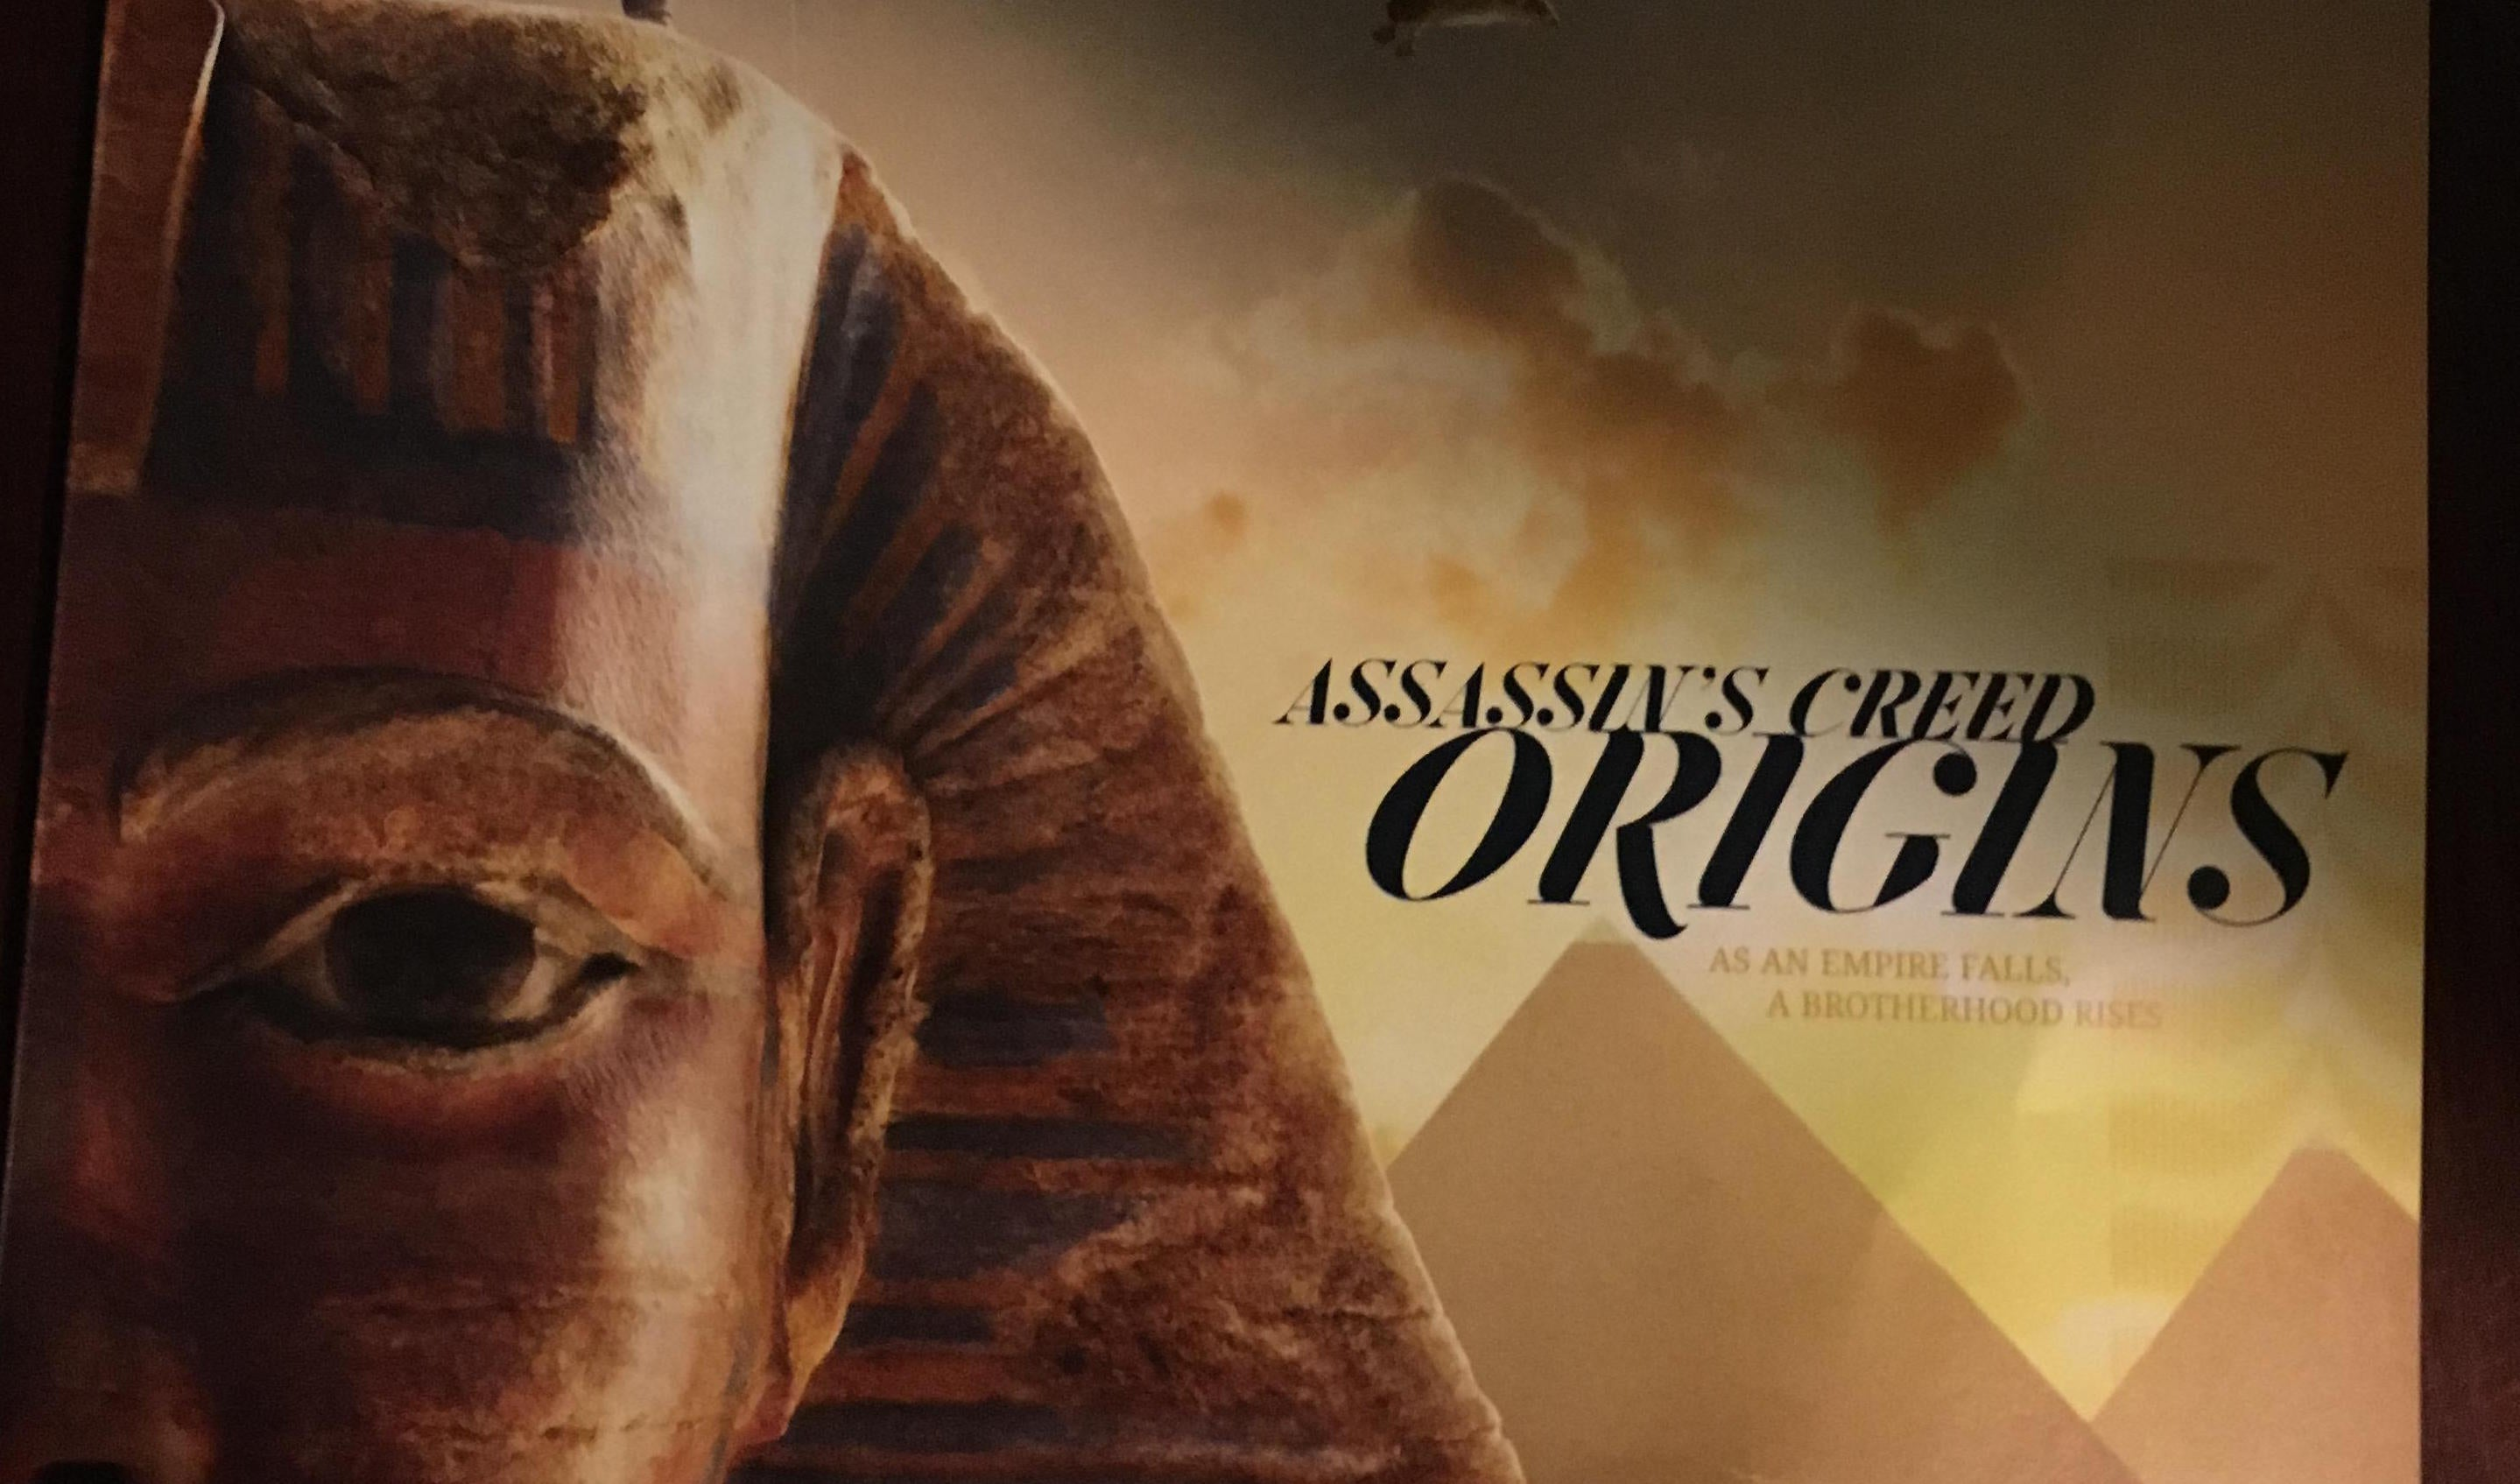 E3 2017: Ubisoft Properly Reveals Assassin's Creed: Origins